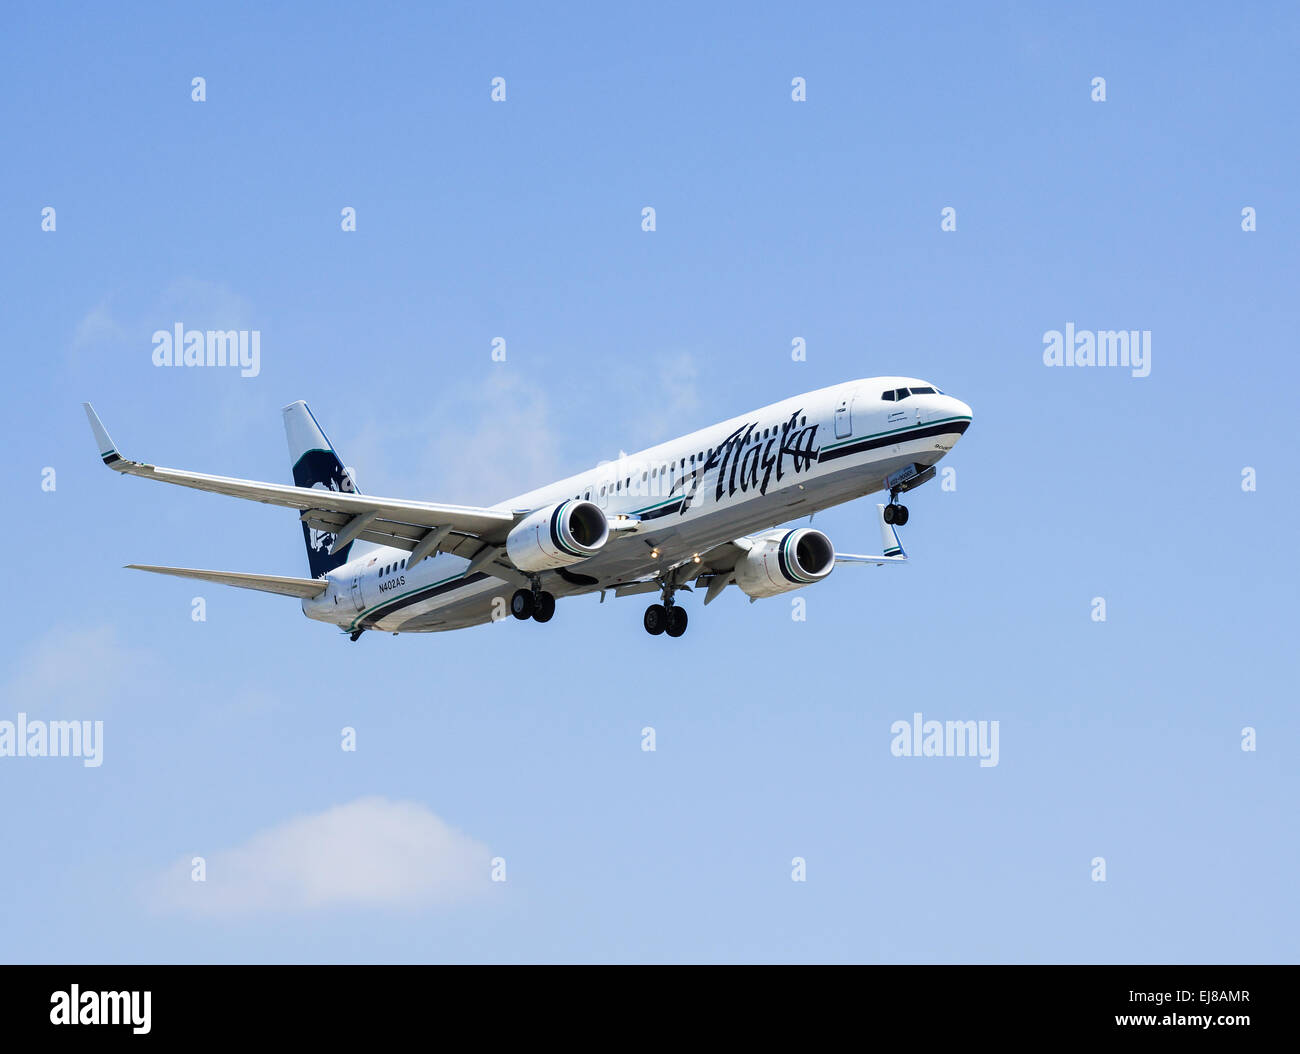 Alaska airlines ticker symbol images symbol and sign ideas alaska airlines stock photo royalty free image 80089319 alamy alaska airlines alaska airlines stock photo buycottarizona buycottarizona